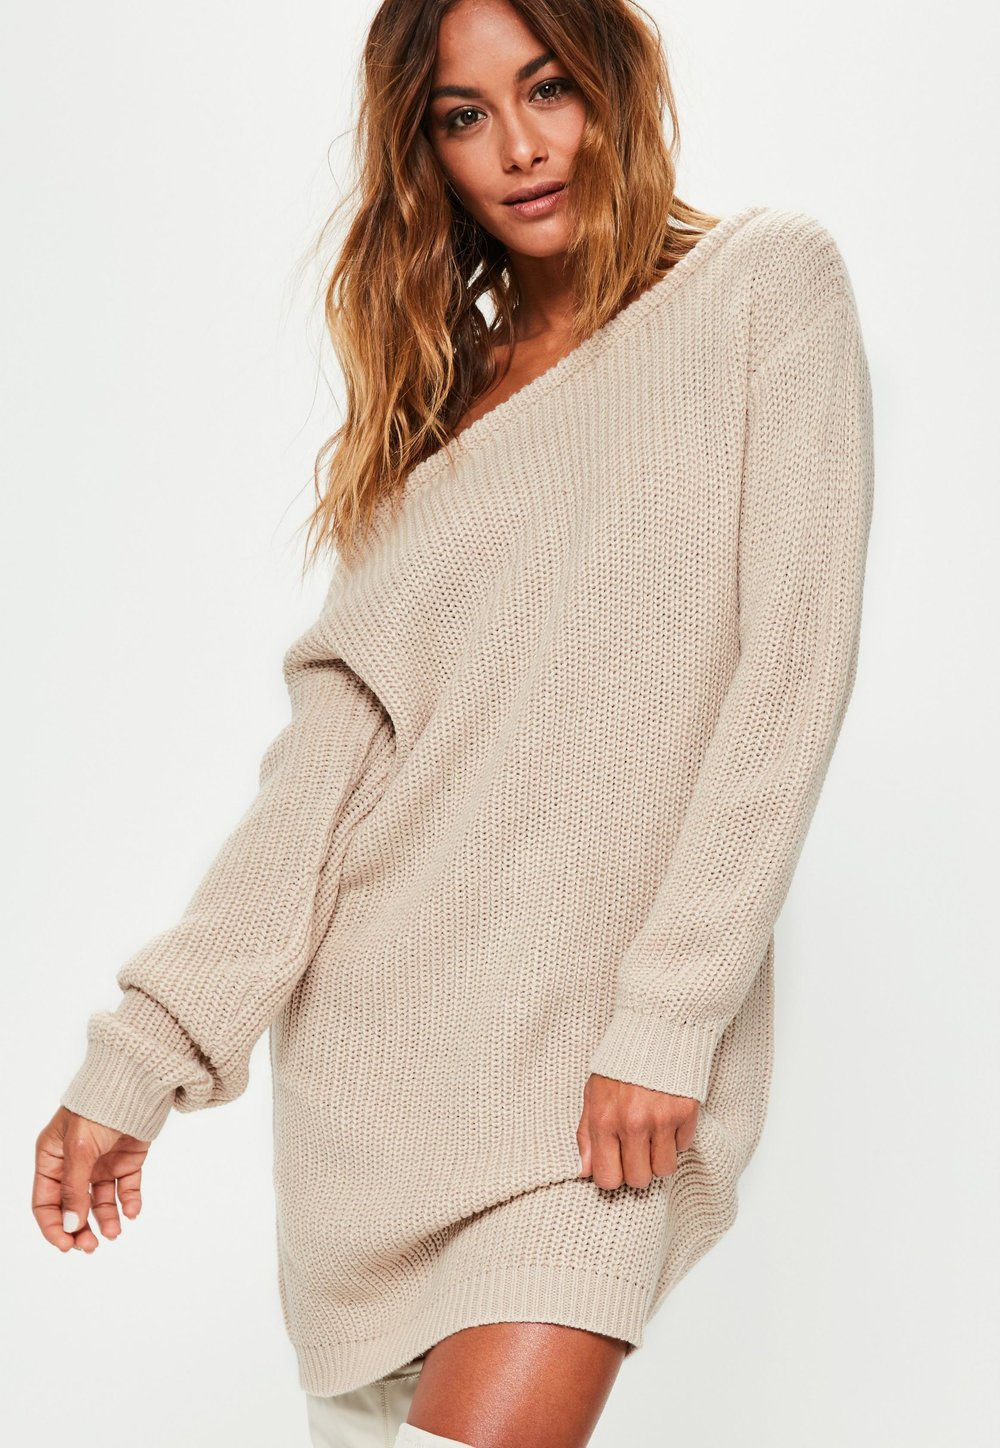 beige-off-shoulder-knitted-sweater-dress.jpg